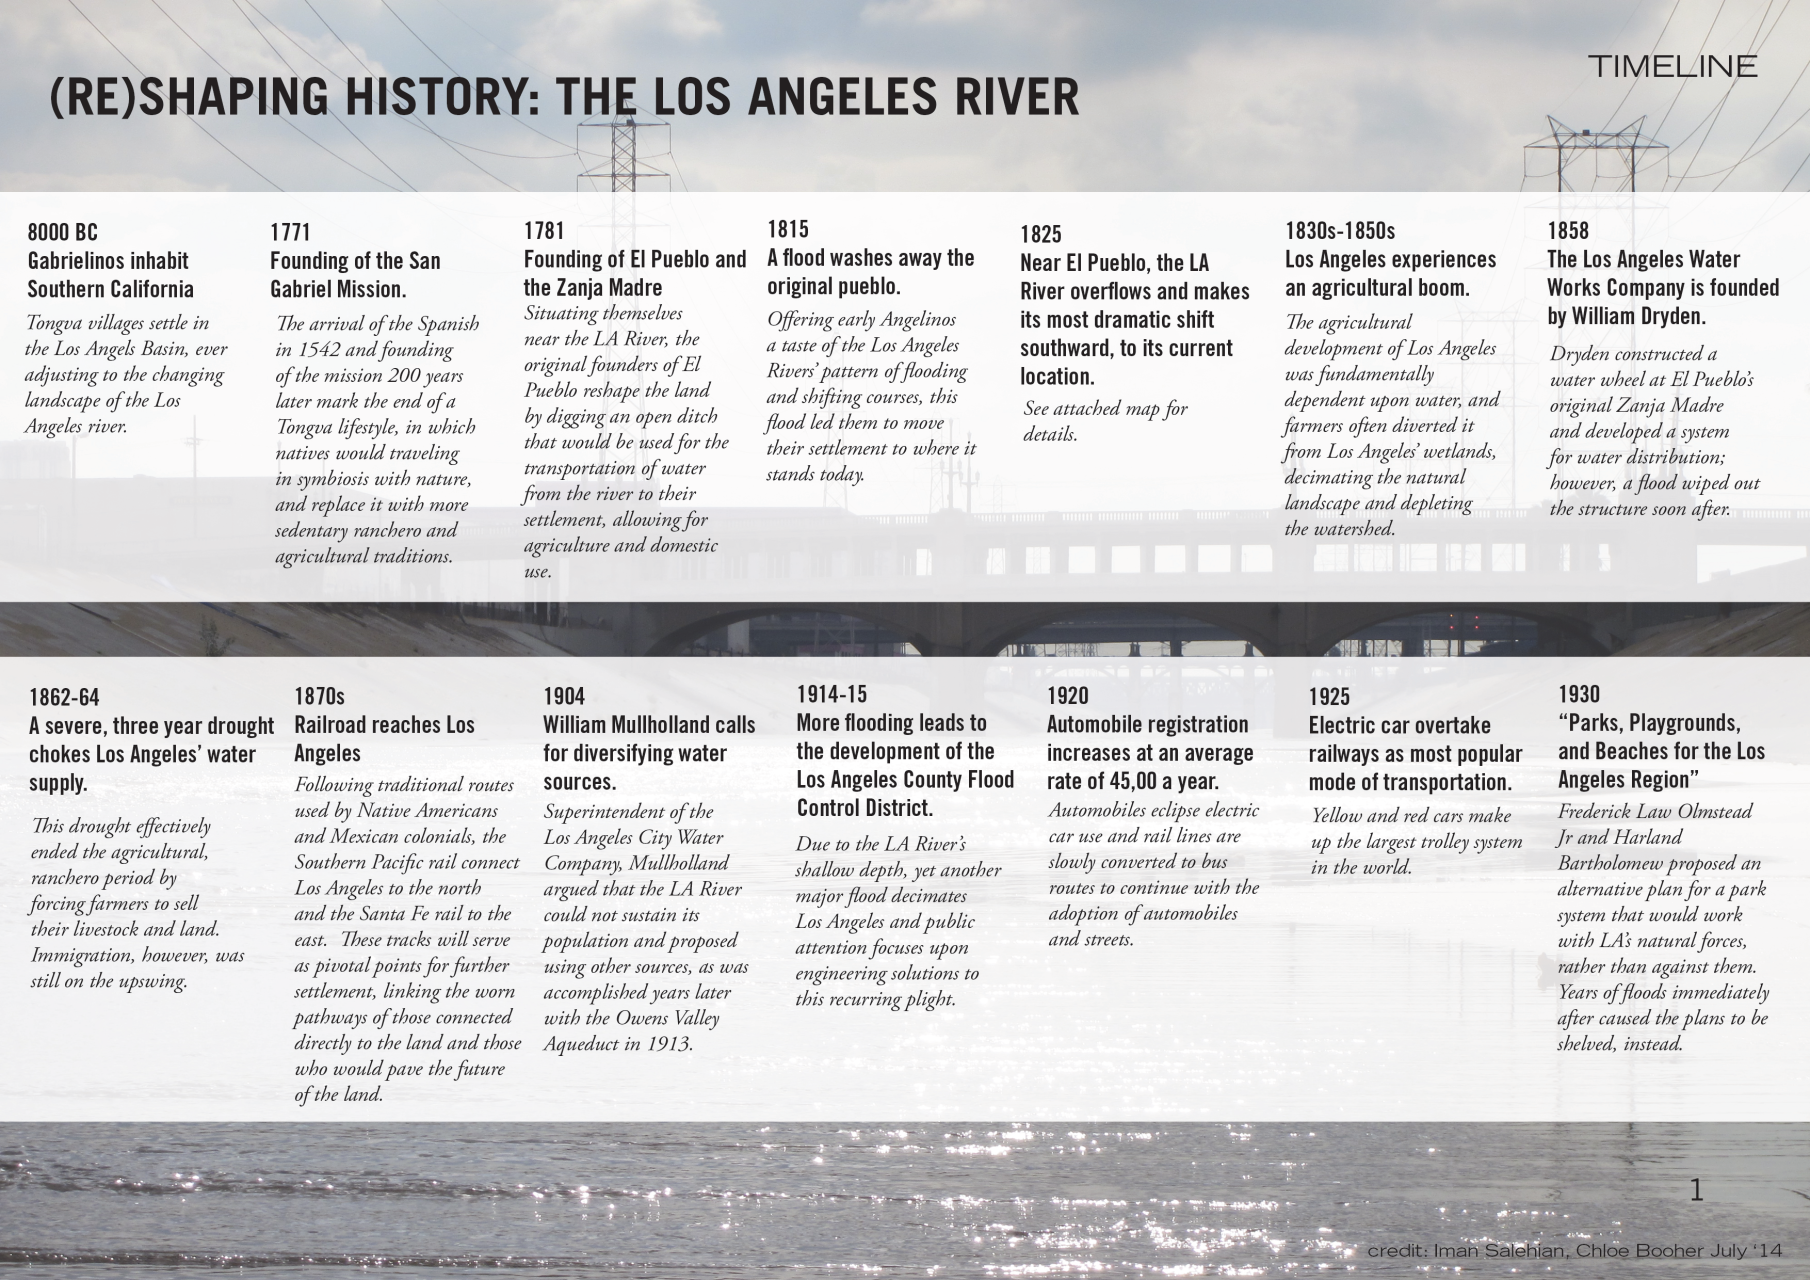 (Re)Shaping History - The LA River